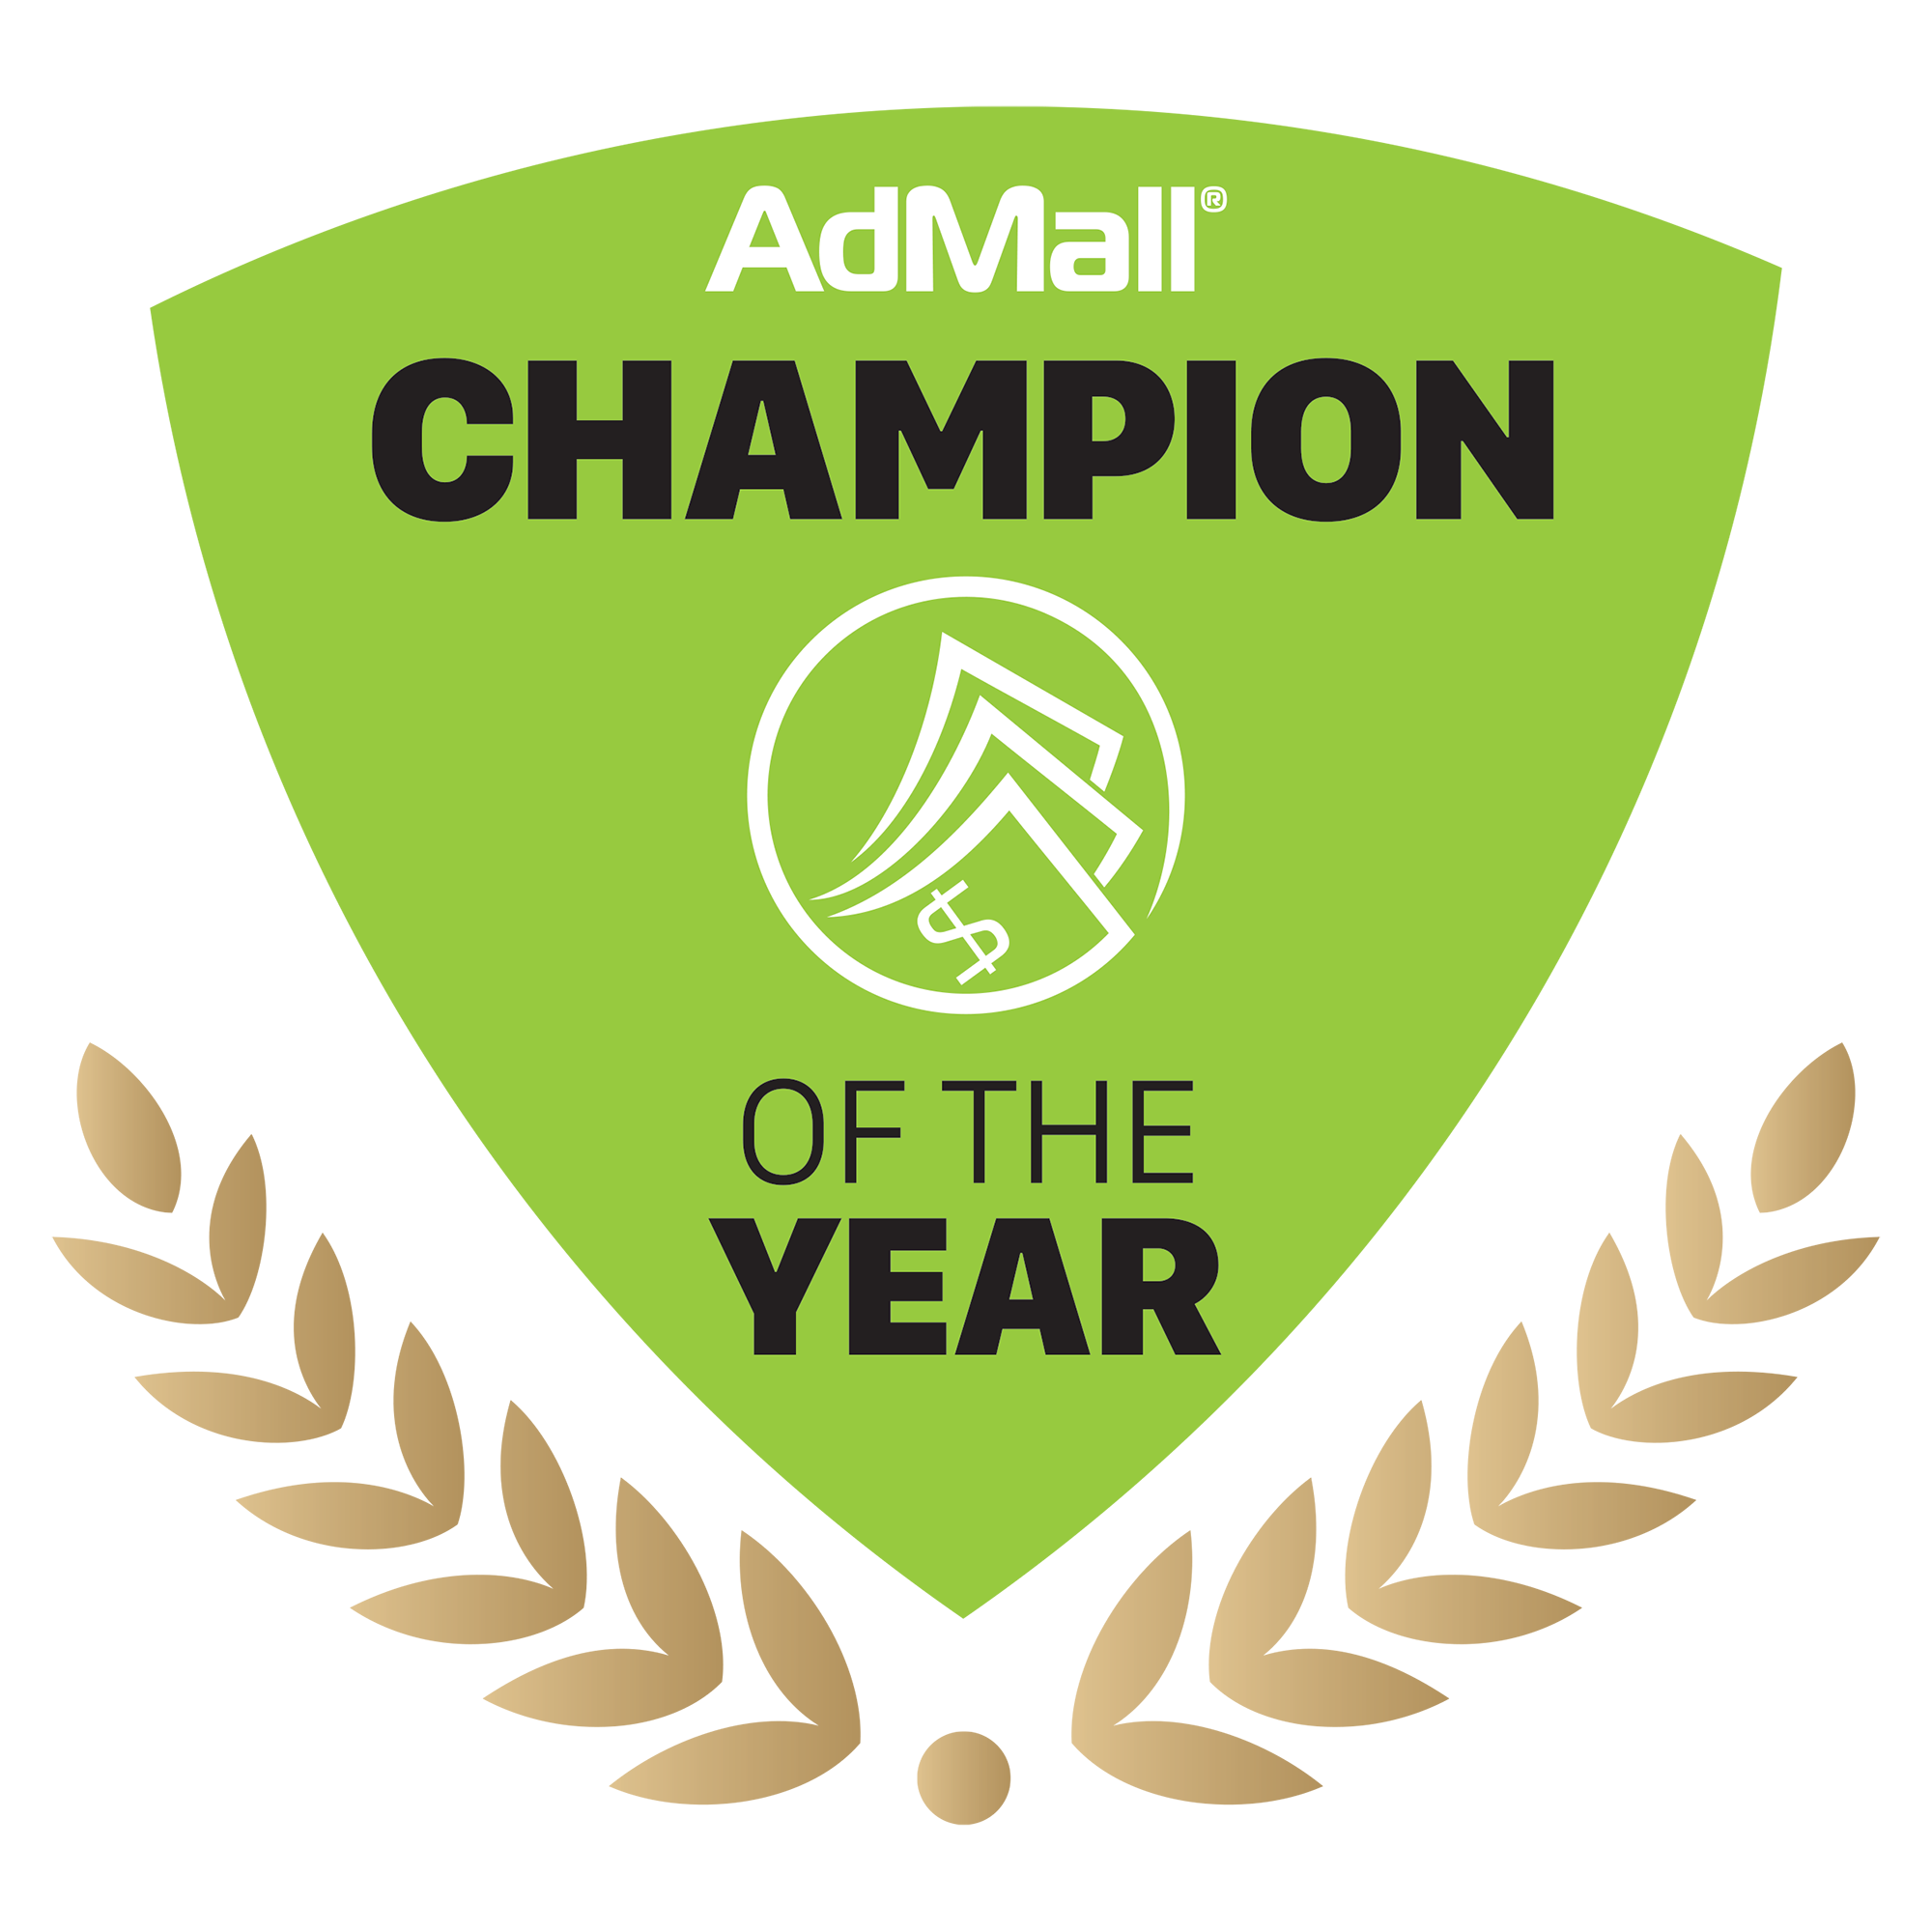 AdMall Champion of the Year